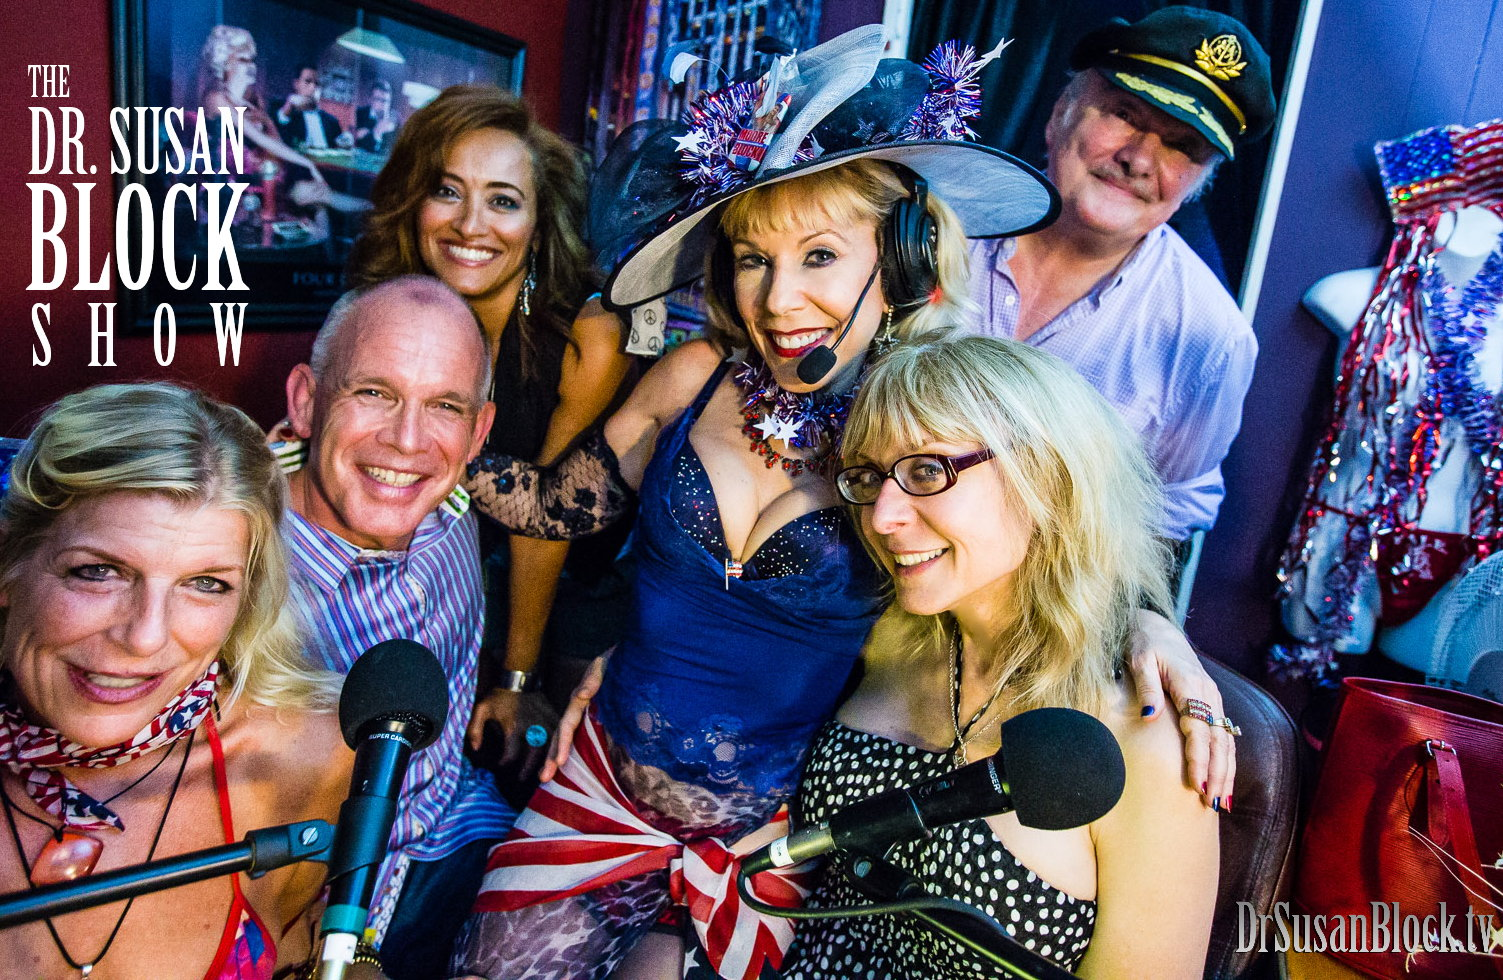 Cici Cummins, Danny O'Neill, Susan from Yemen, Dr. Susan Block, Nina Hartley, Capt'n Max. Photo: Jux Lii